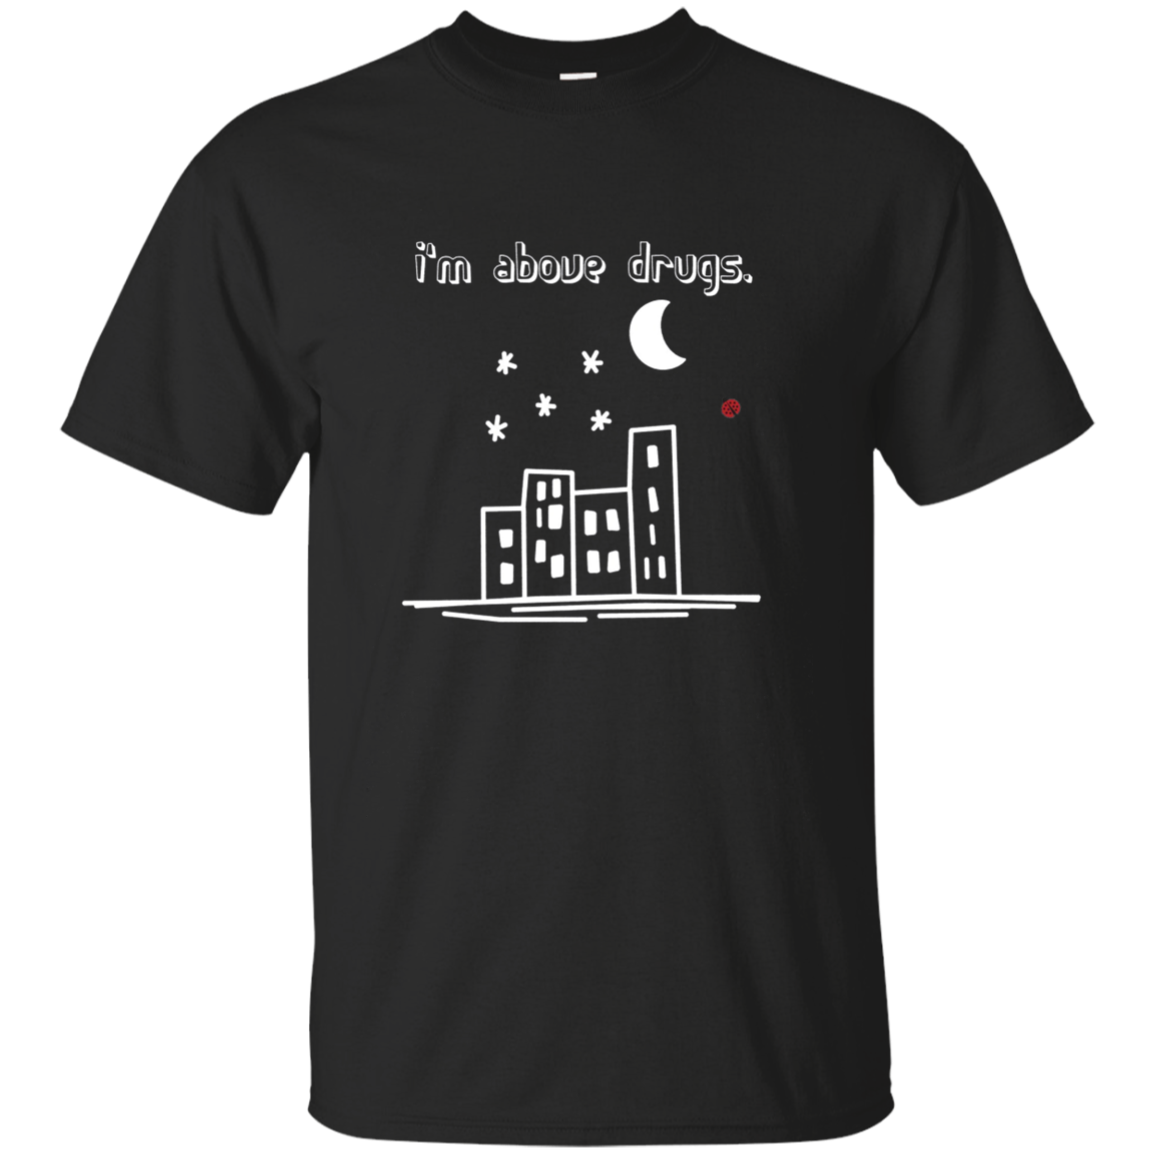 BAD Cityscape Long Sleeve Tee, Drug Prevention Apparel